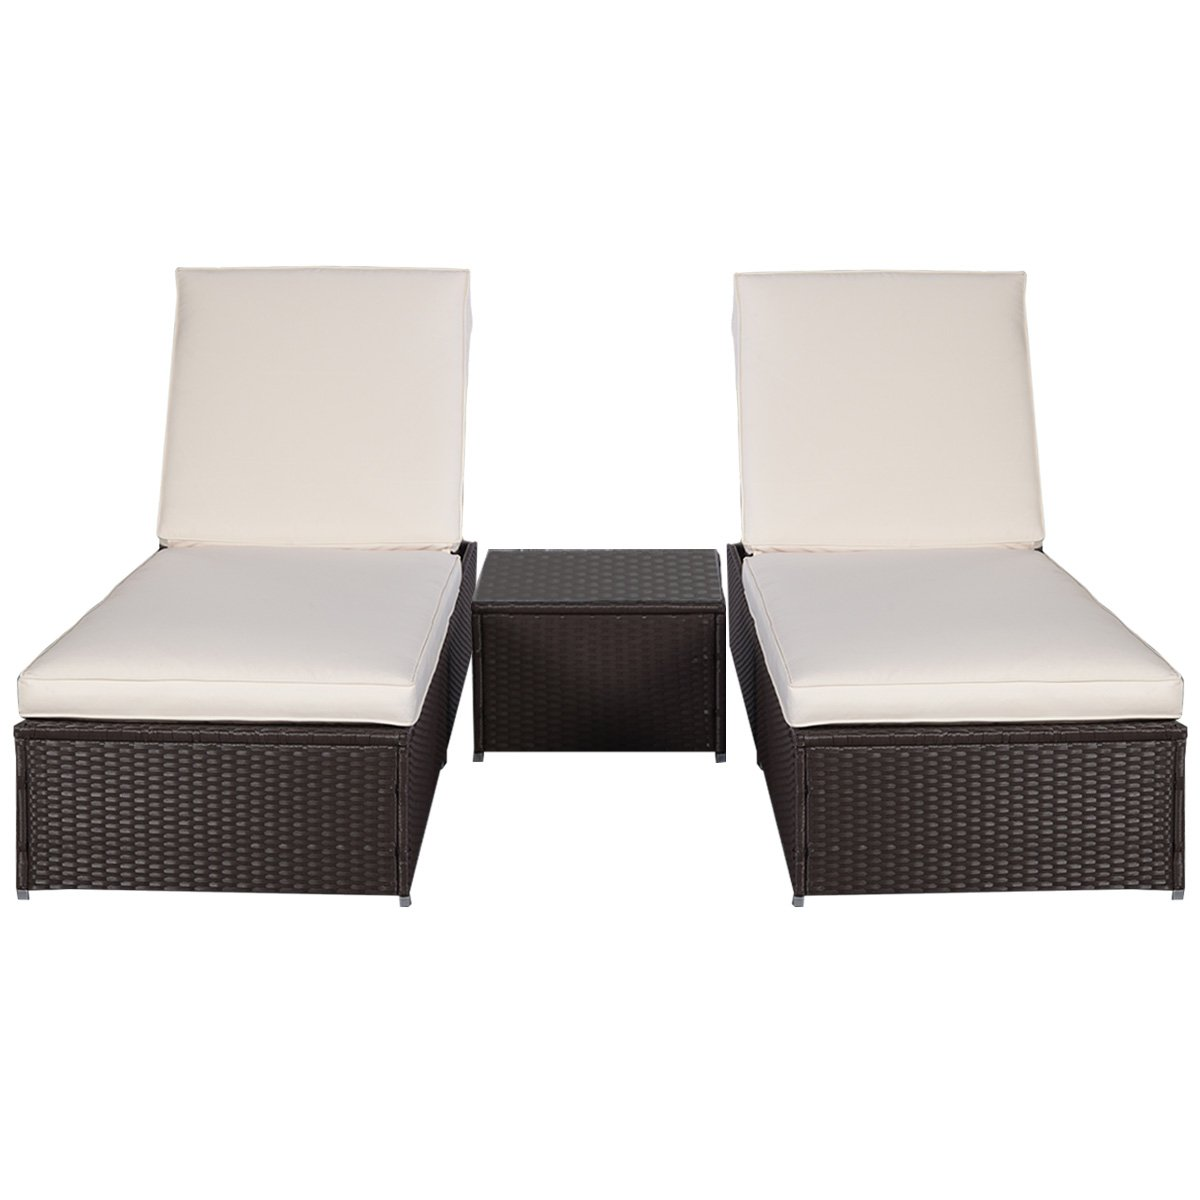 gartenliege 2 personen rattan. Black Bedroom Furniture Sets. Home Design Ideas